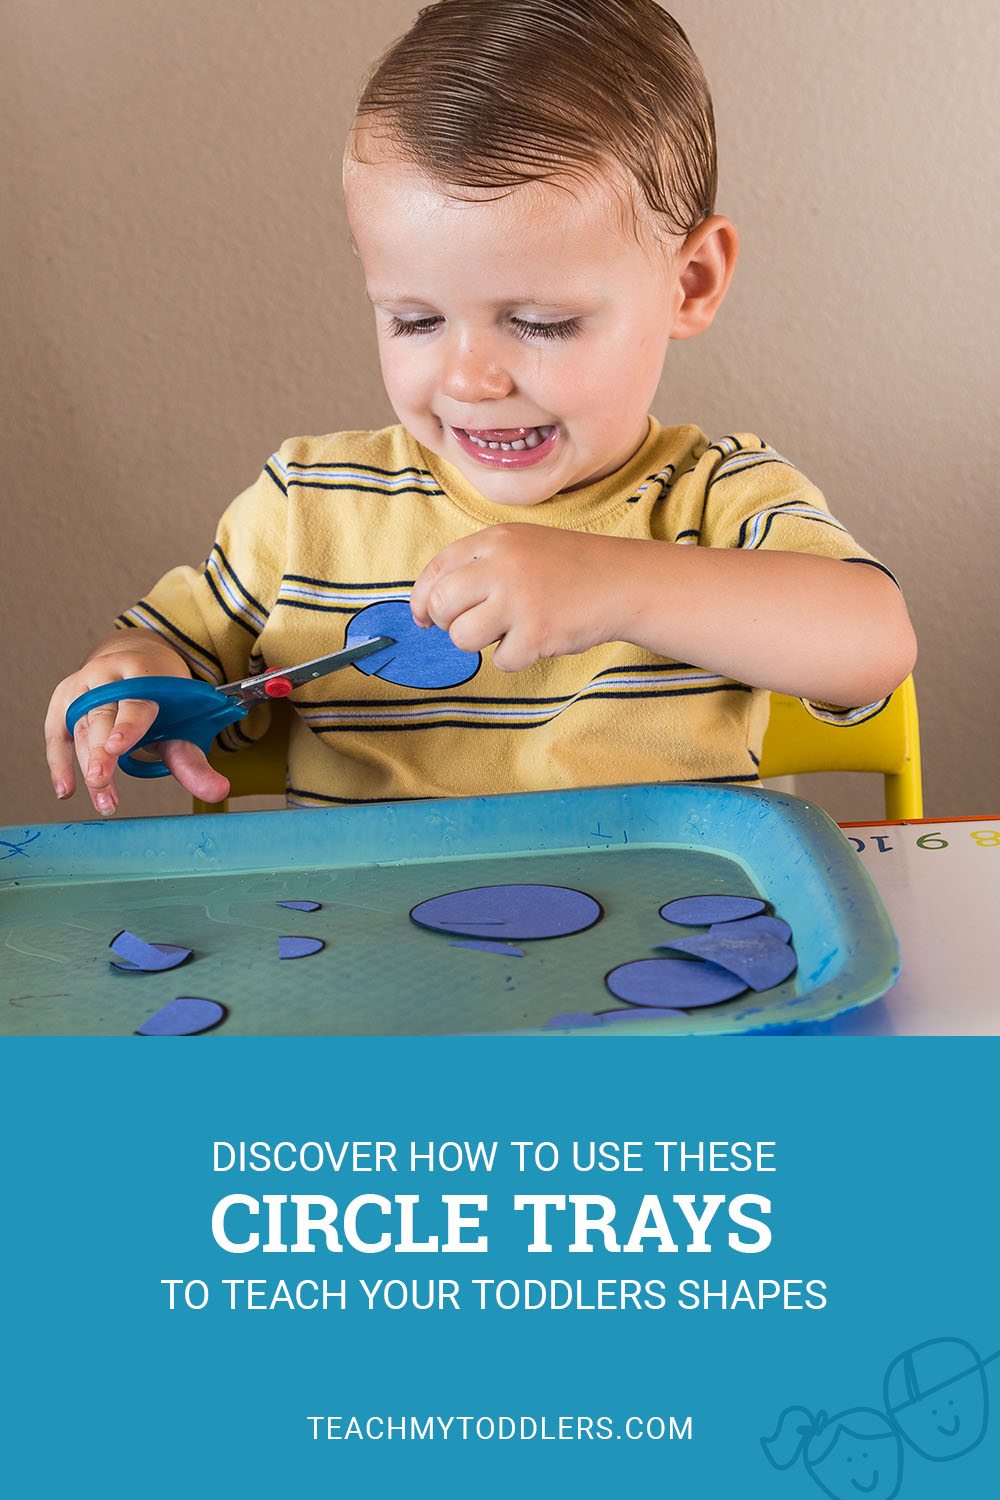 Discover how to use these circle trays to teach toddlers shapes